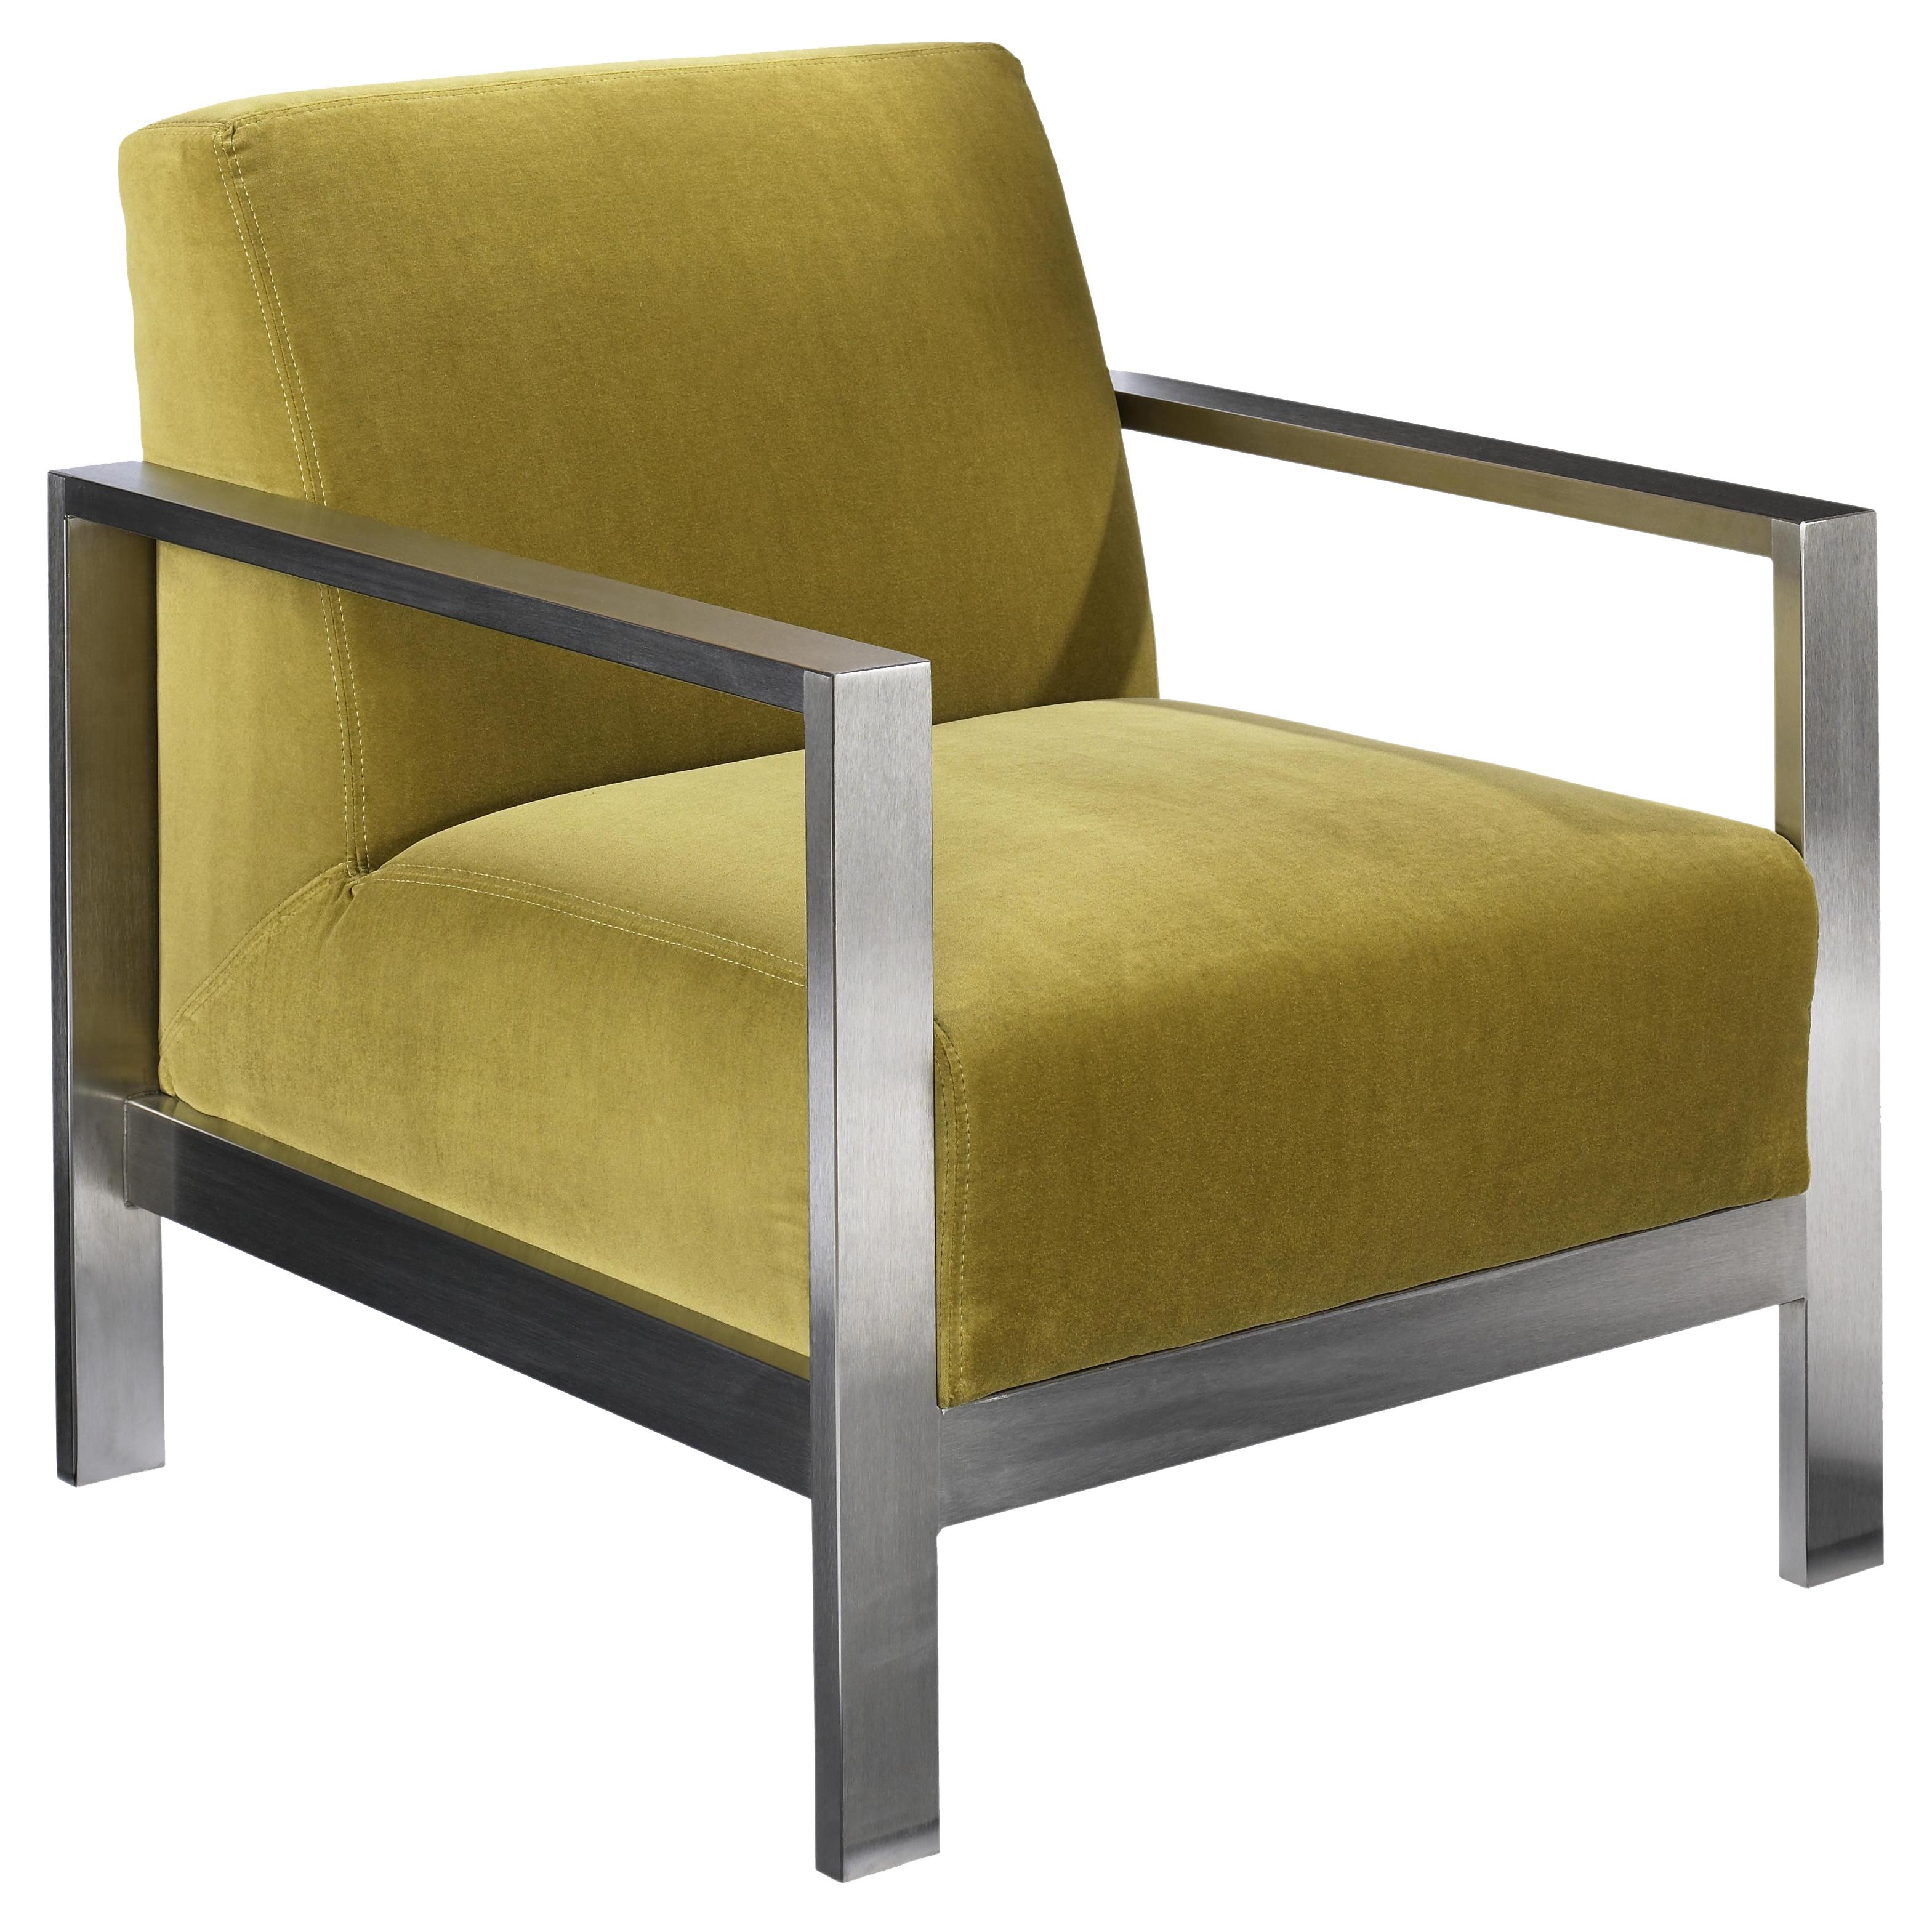 Accentuates Morrissey Metal Accent Chair by Jonathan Louis at Fashion Furniture